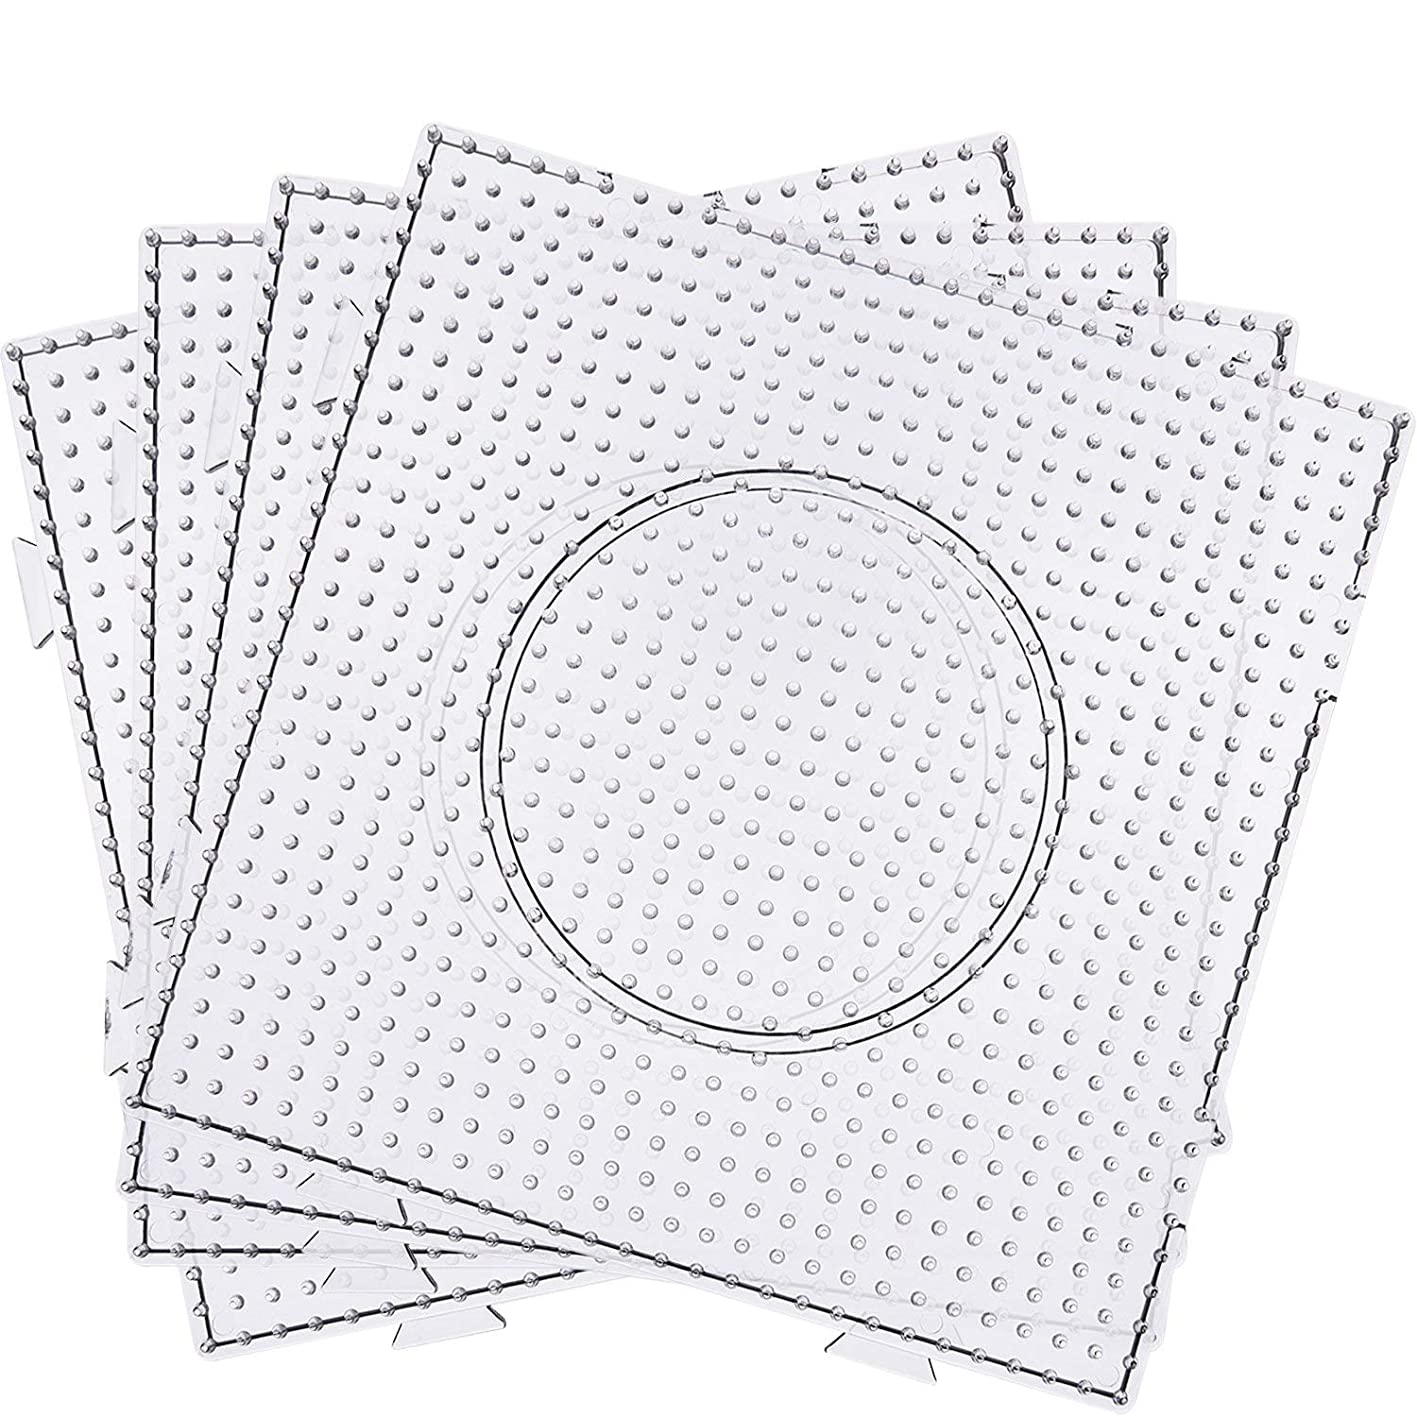 Dr.Luck 5 mm Large Square Fuse Beads Boards Clear Plastic Pegboards for Kids Craft Beads (6 Pieces) hpkalggejly685